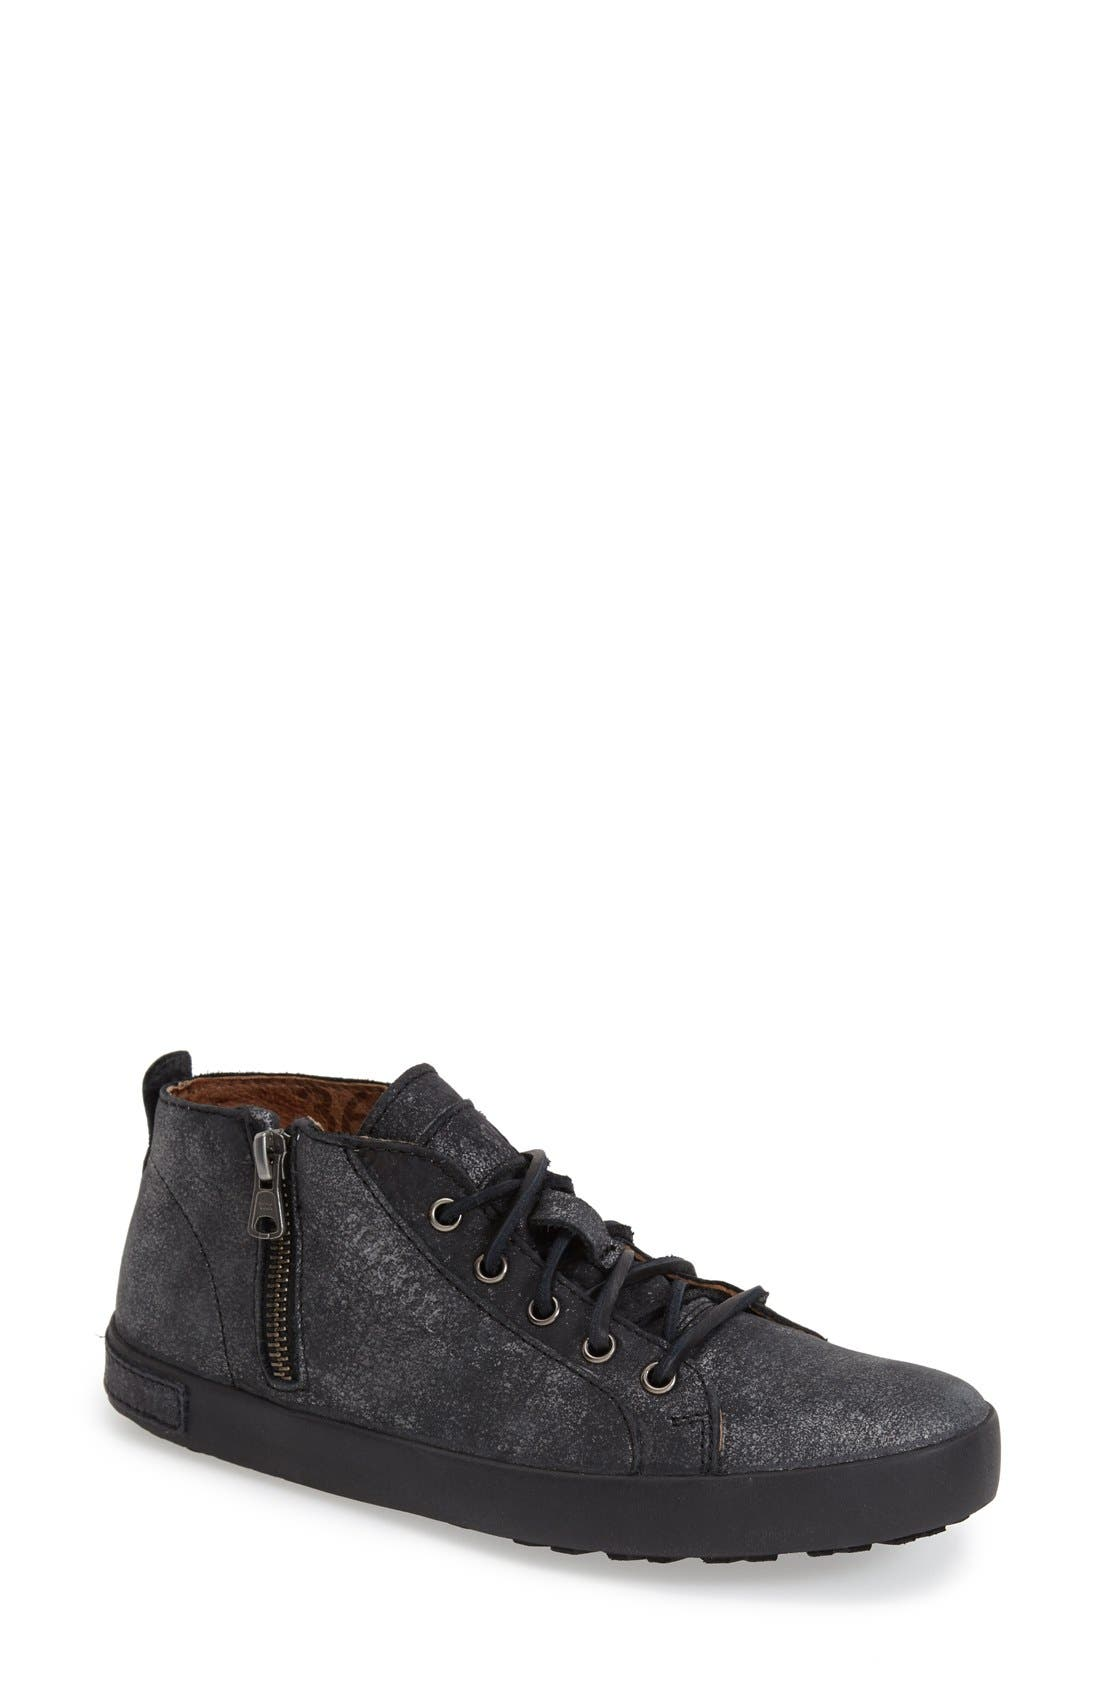 Alternate Image 1 Selected - Blackstone 'JL17' Sneaker (Women)